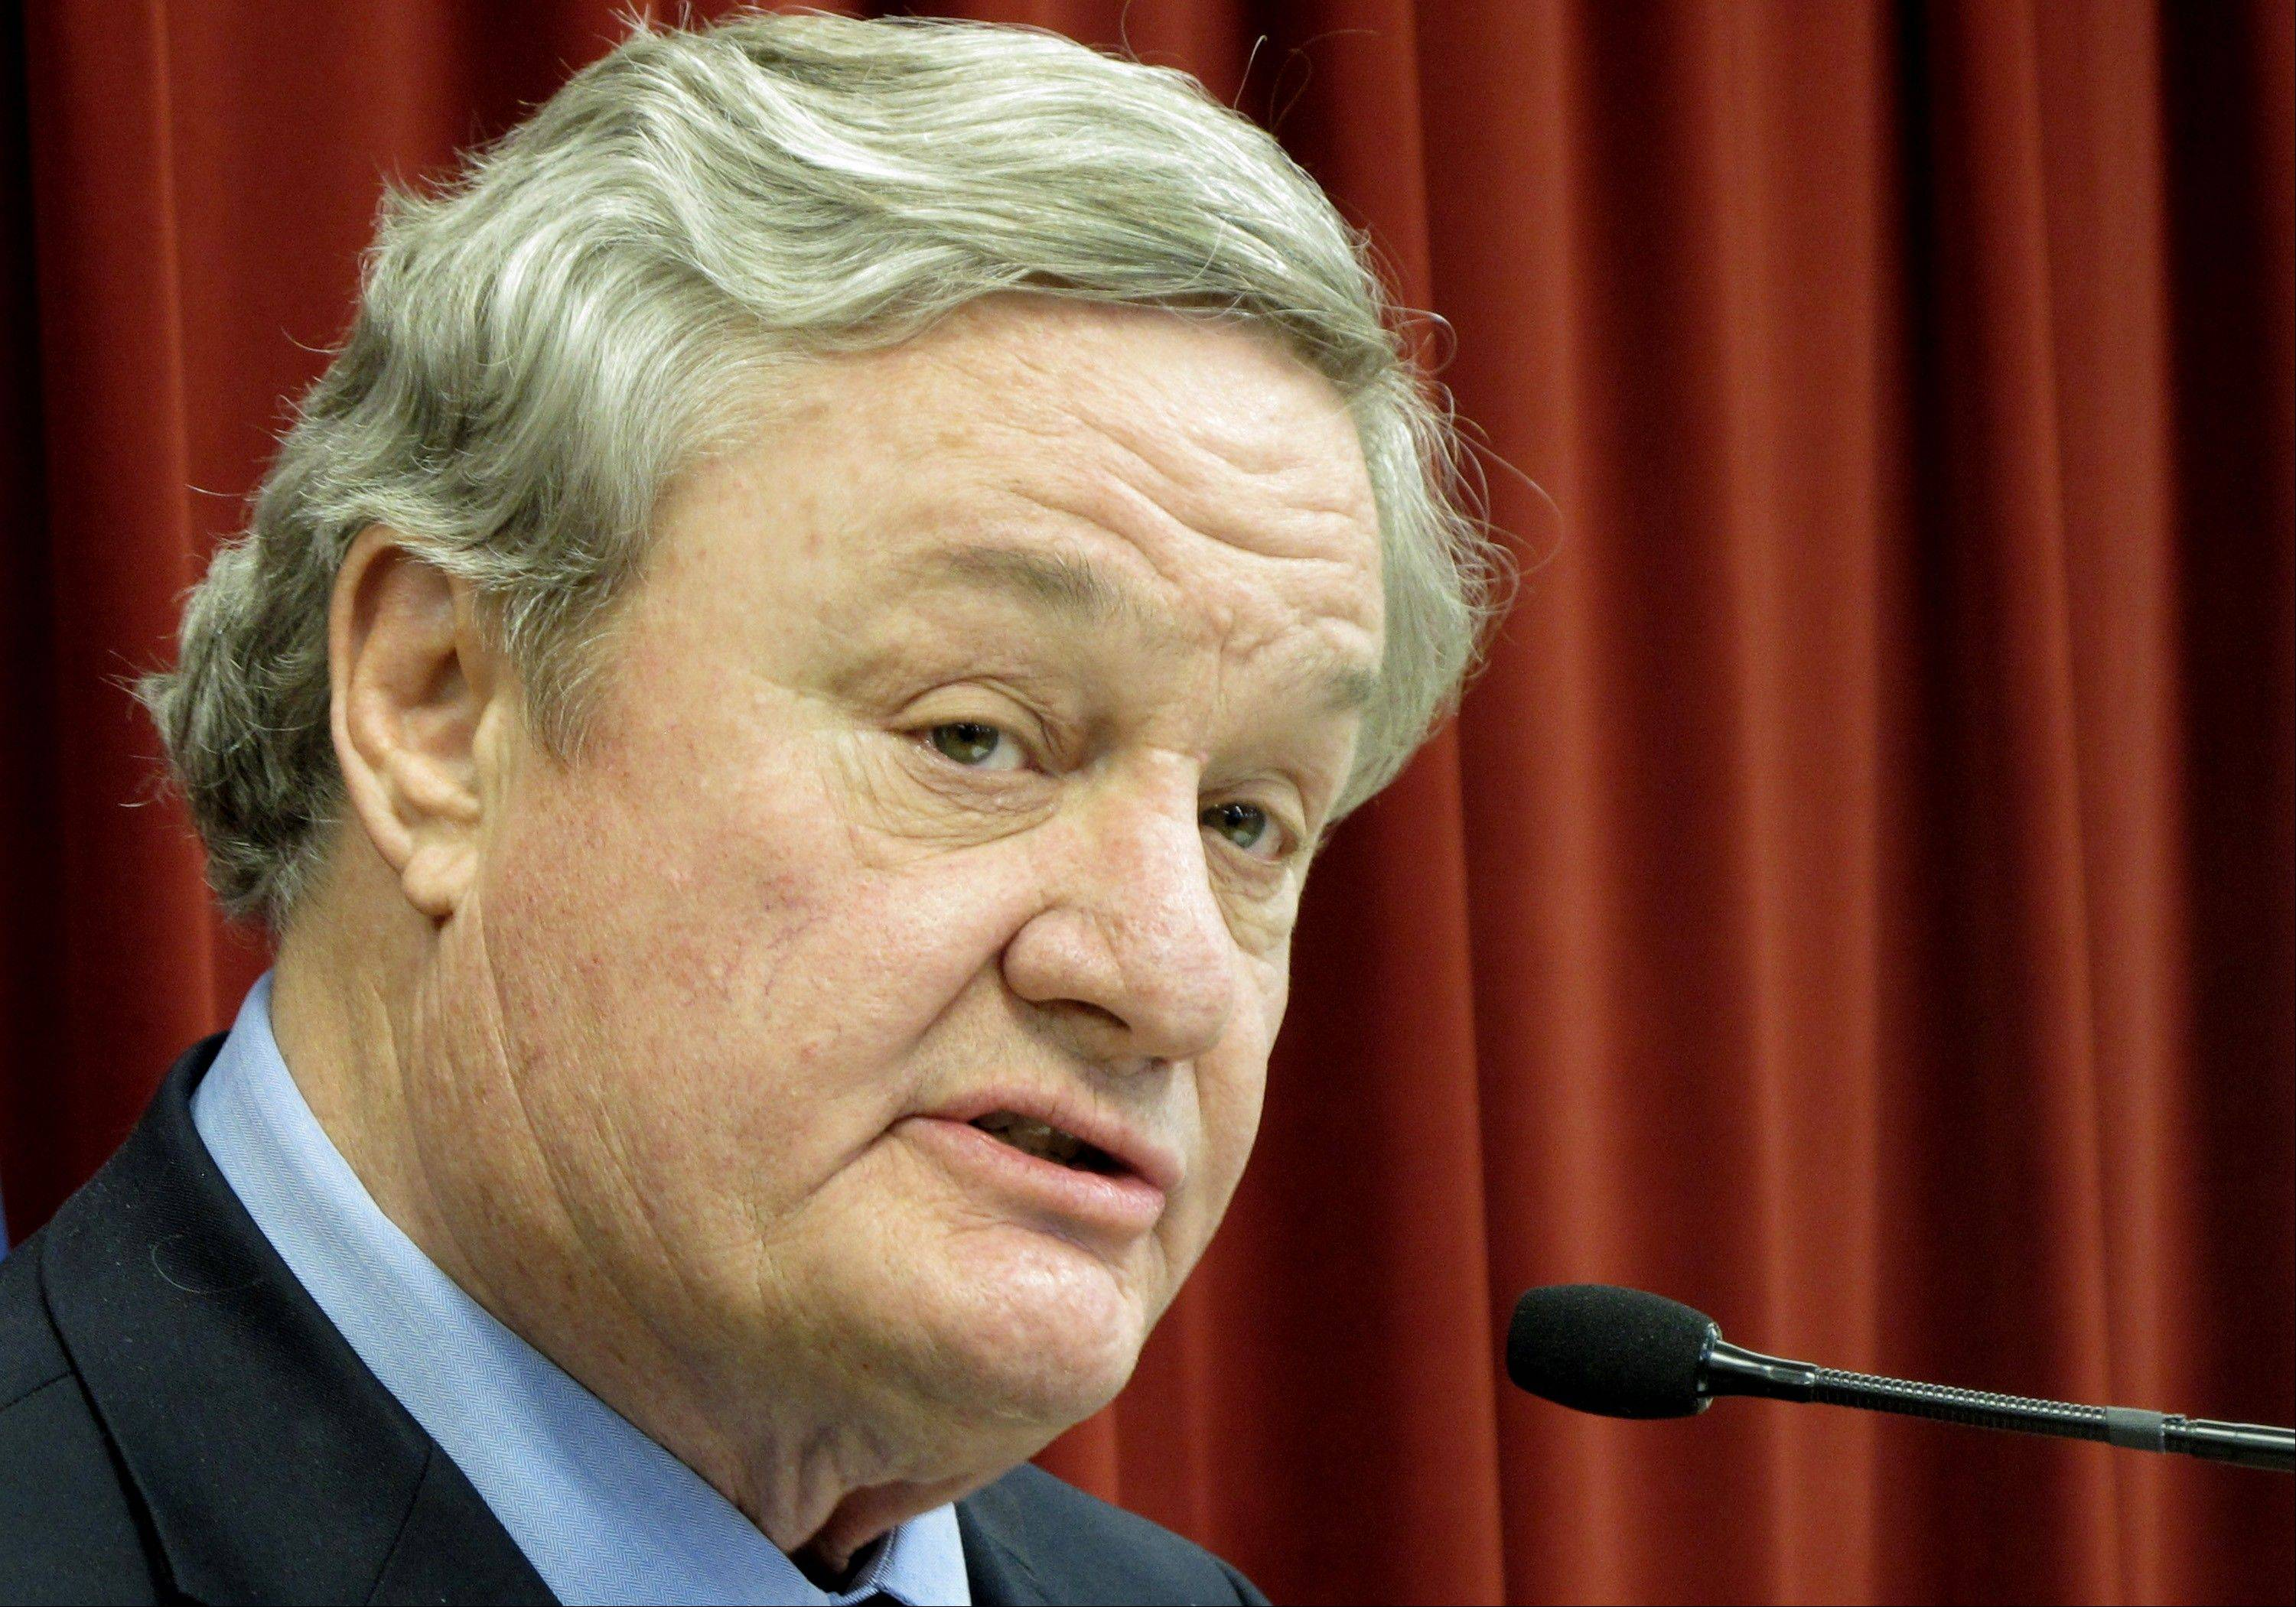 North Dakota Gov. Jack Dalrymple signed legislation Tuesday that that would make North Dakota the nation�s most restrictive state on abortion rights, banning the procedure if a fetal heartbeat can be detected � something that can happen as early as six weeks into a pregnancy.